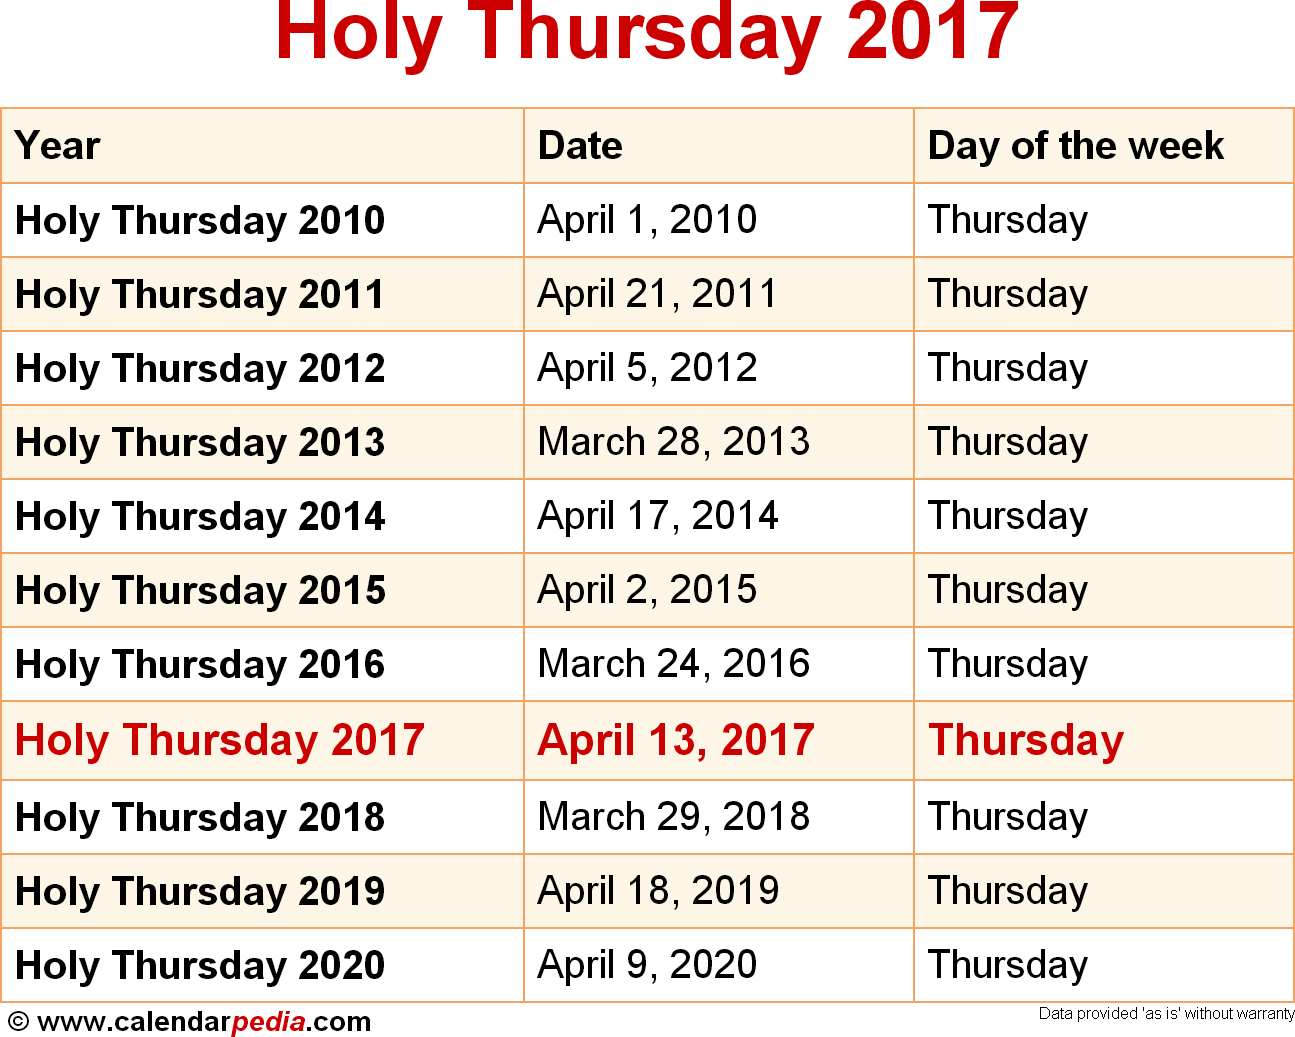 Holy Thursday 2017